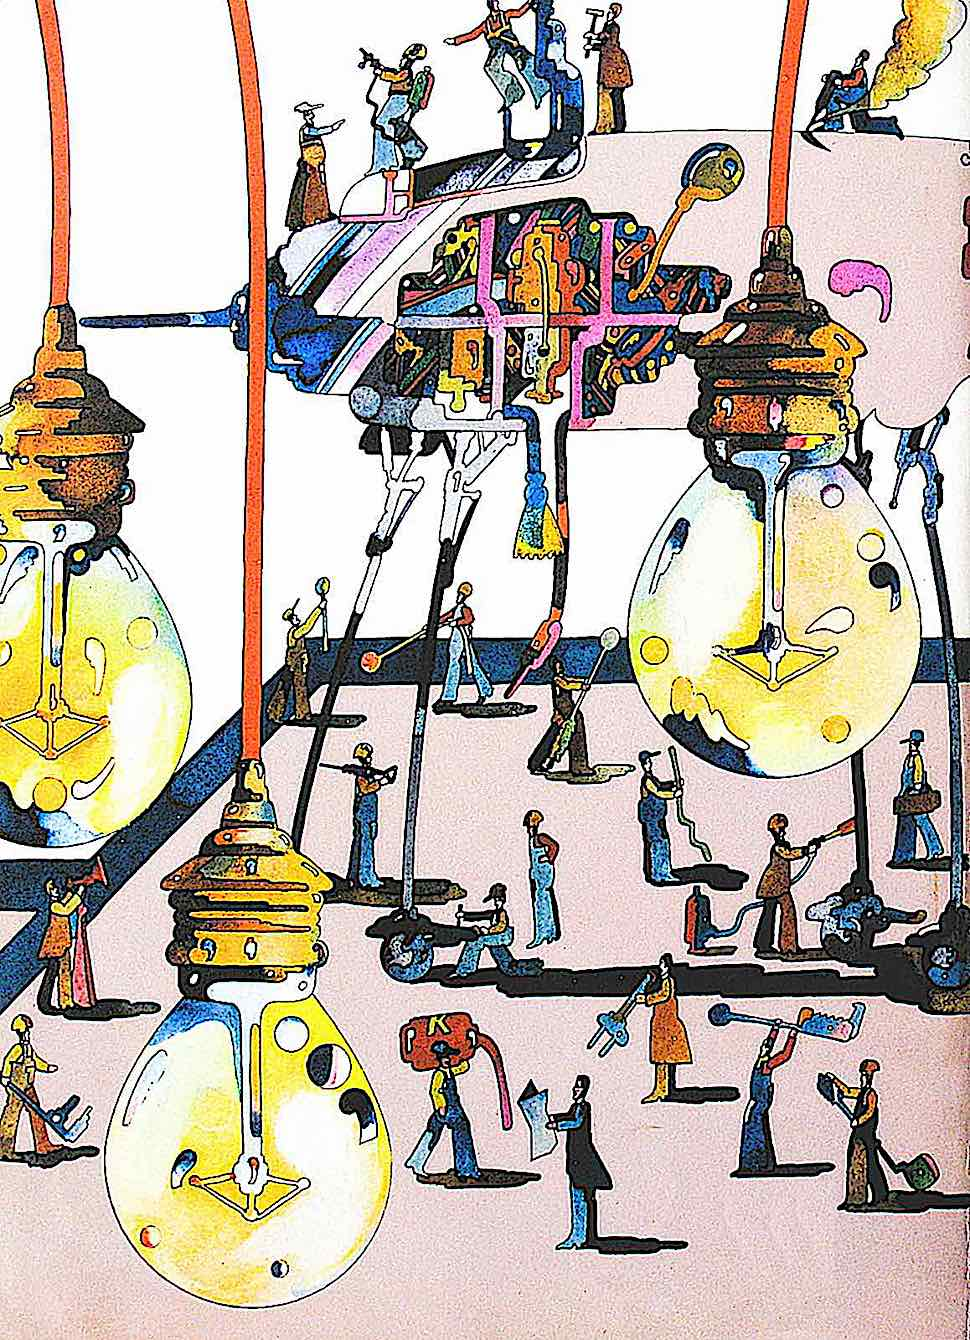 a Heinz Edelmann illustration of factory workers and hanging lights